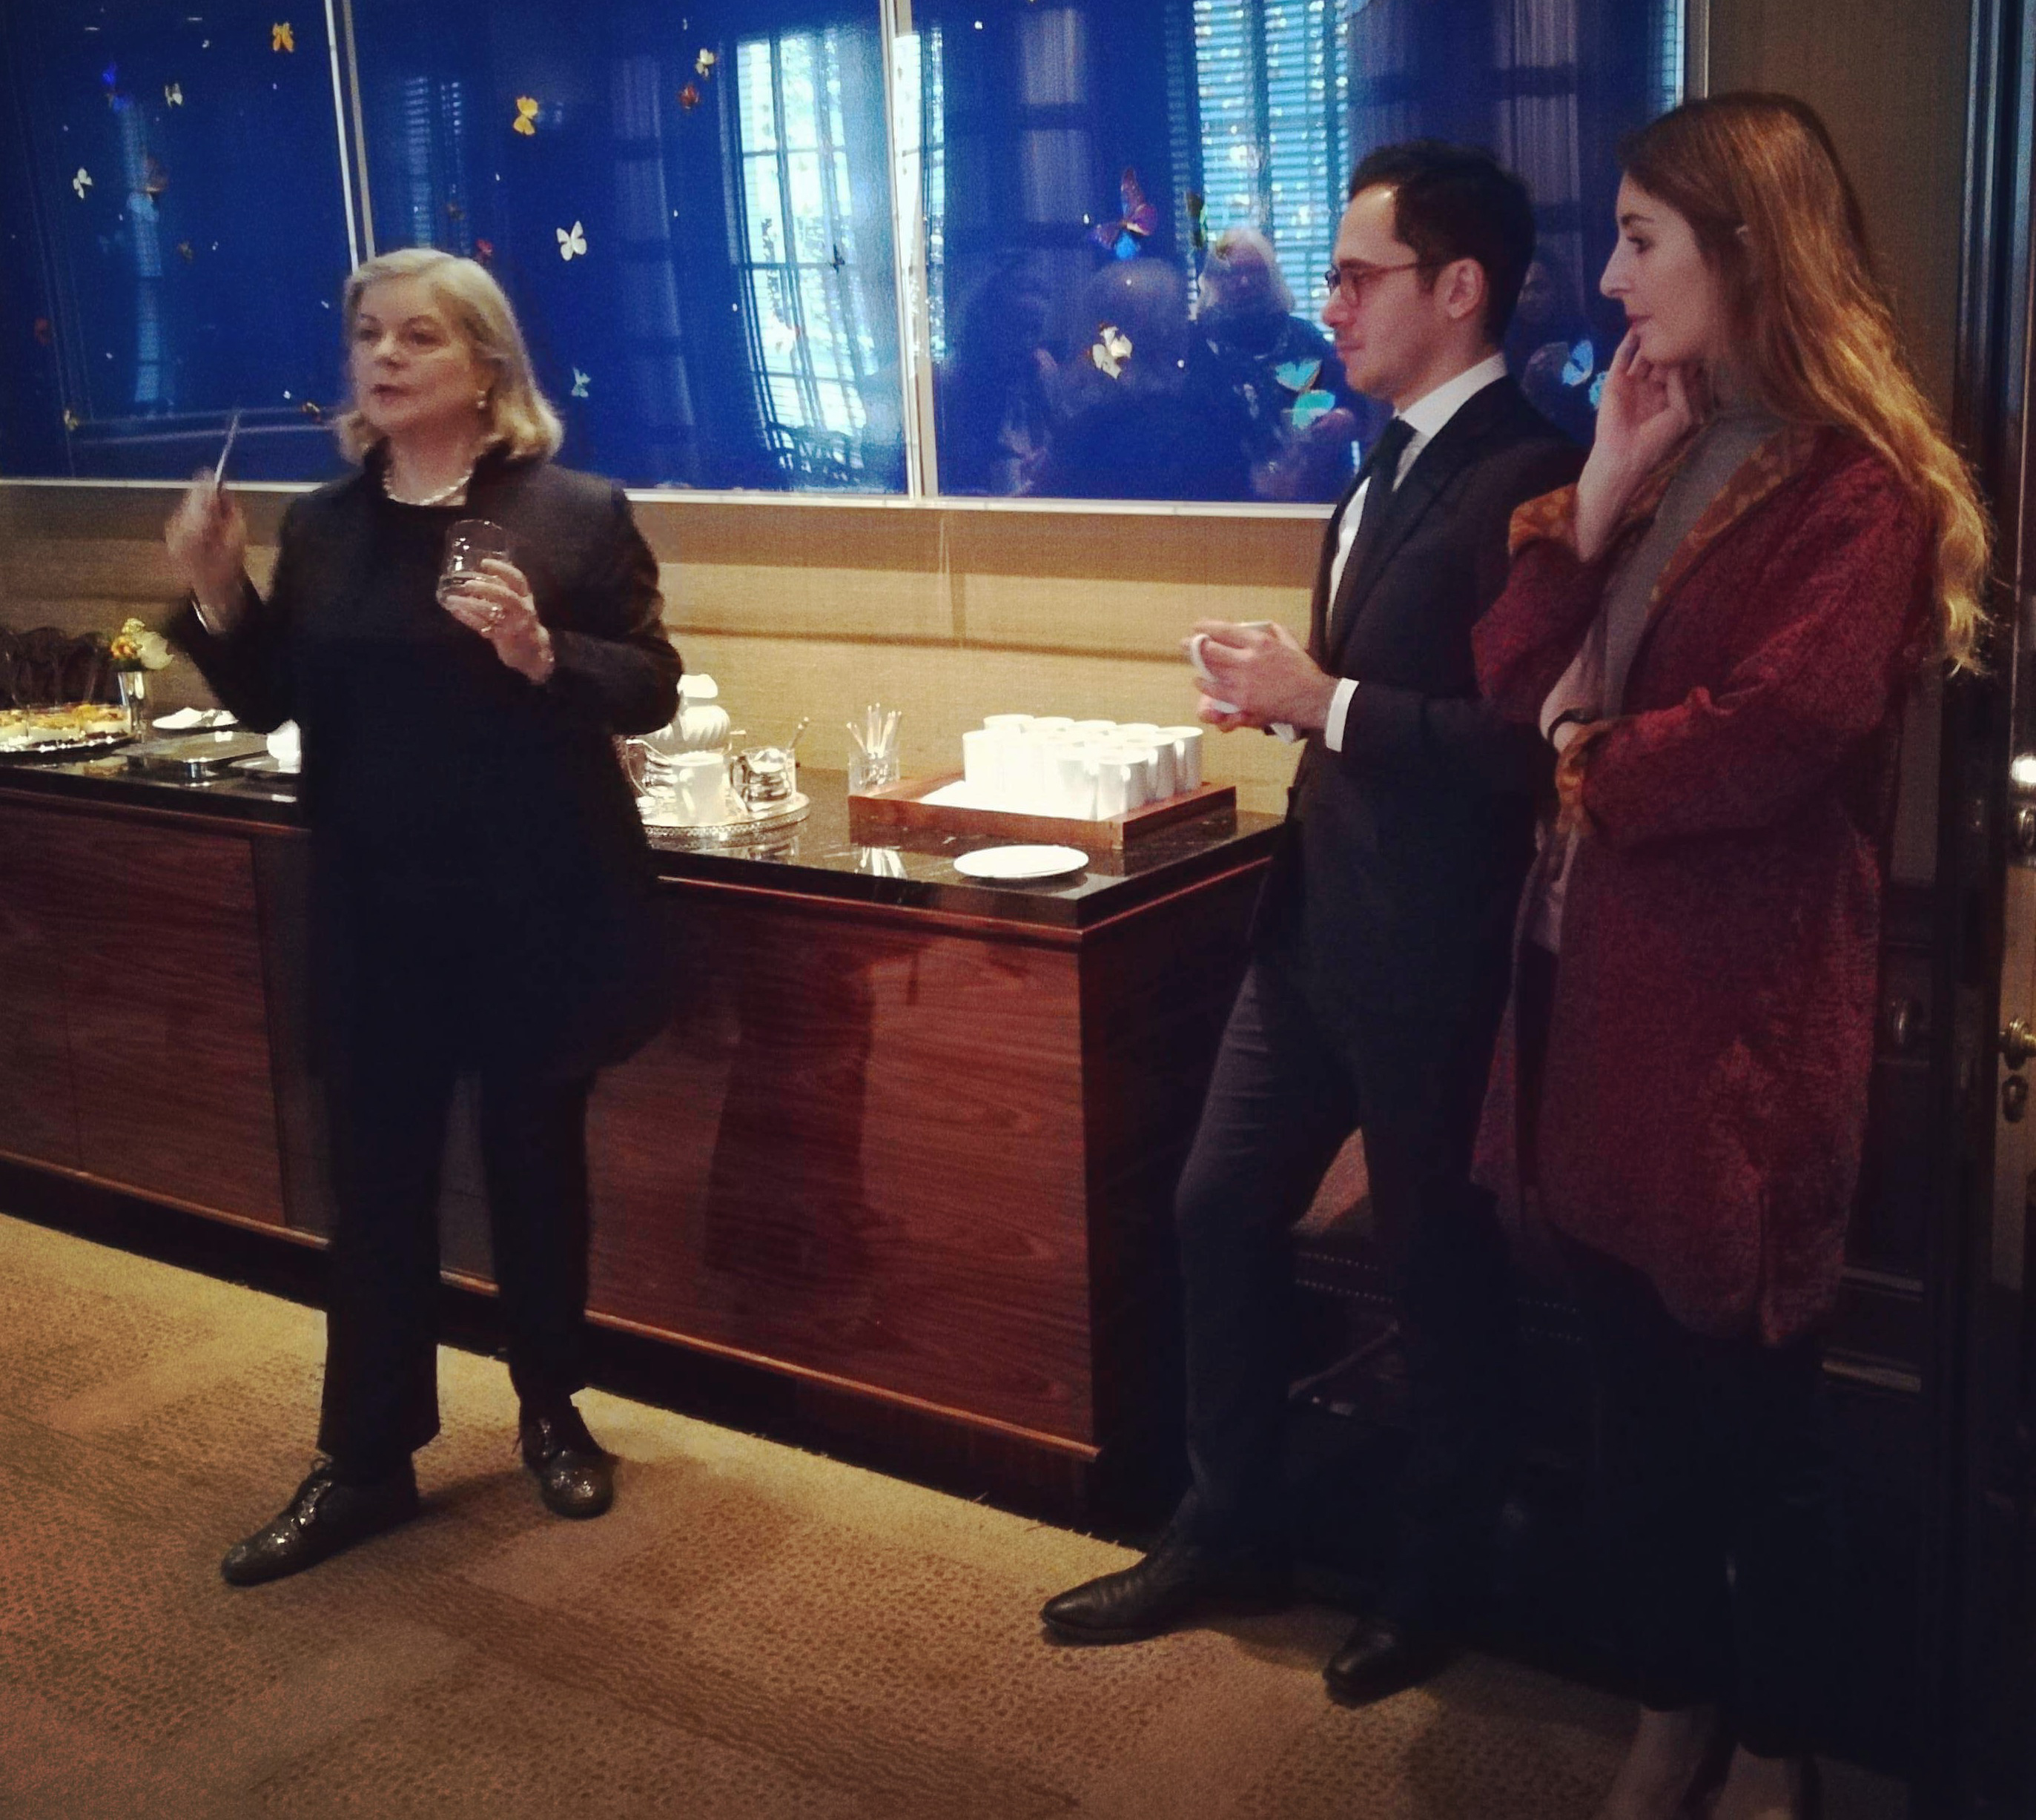 FAI UK Trustee Anna Somers Cocks OBE talking about FAI during the breakfast at Sotheby's